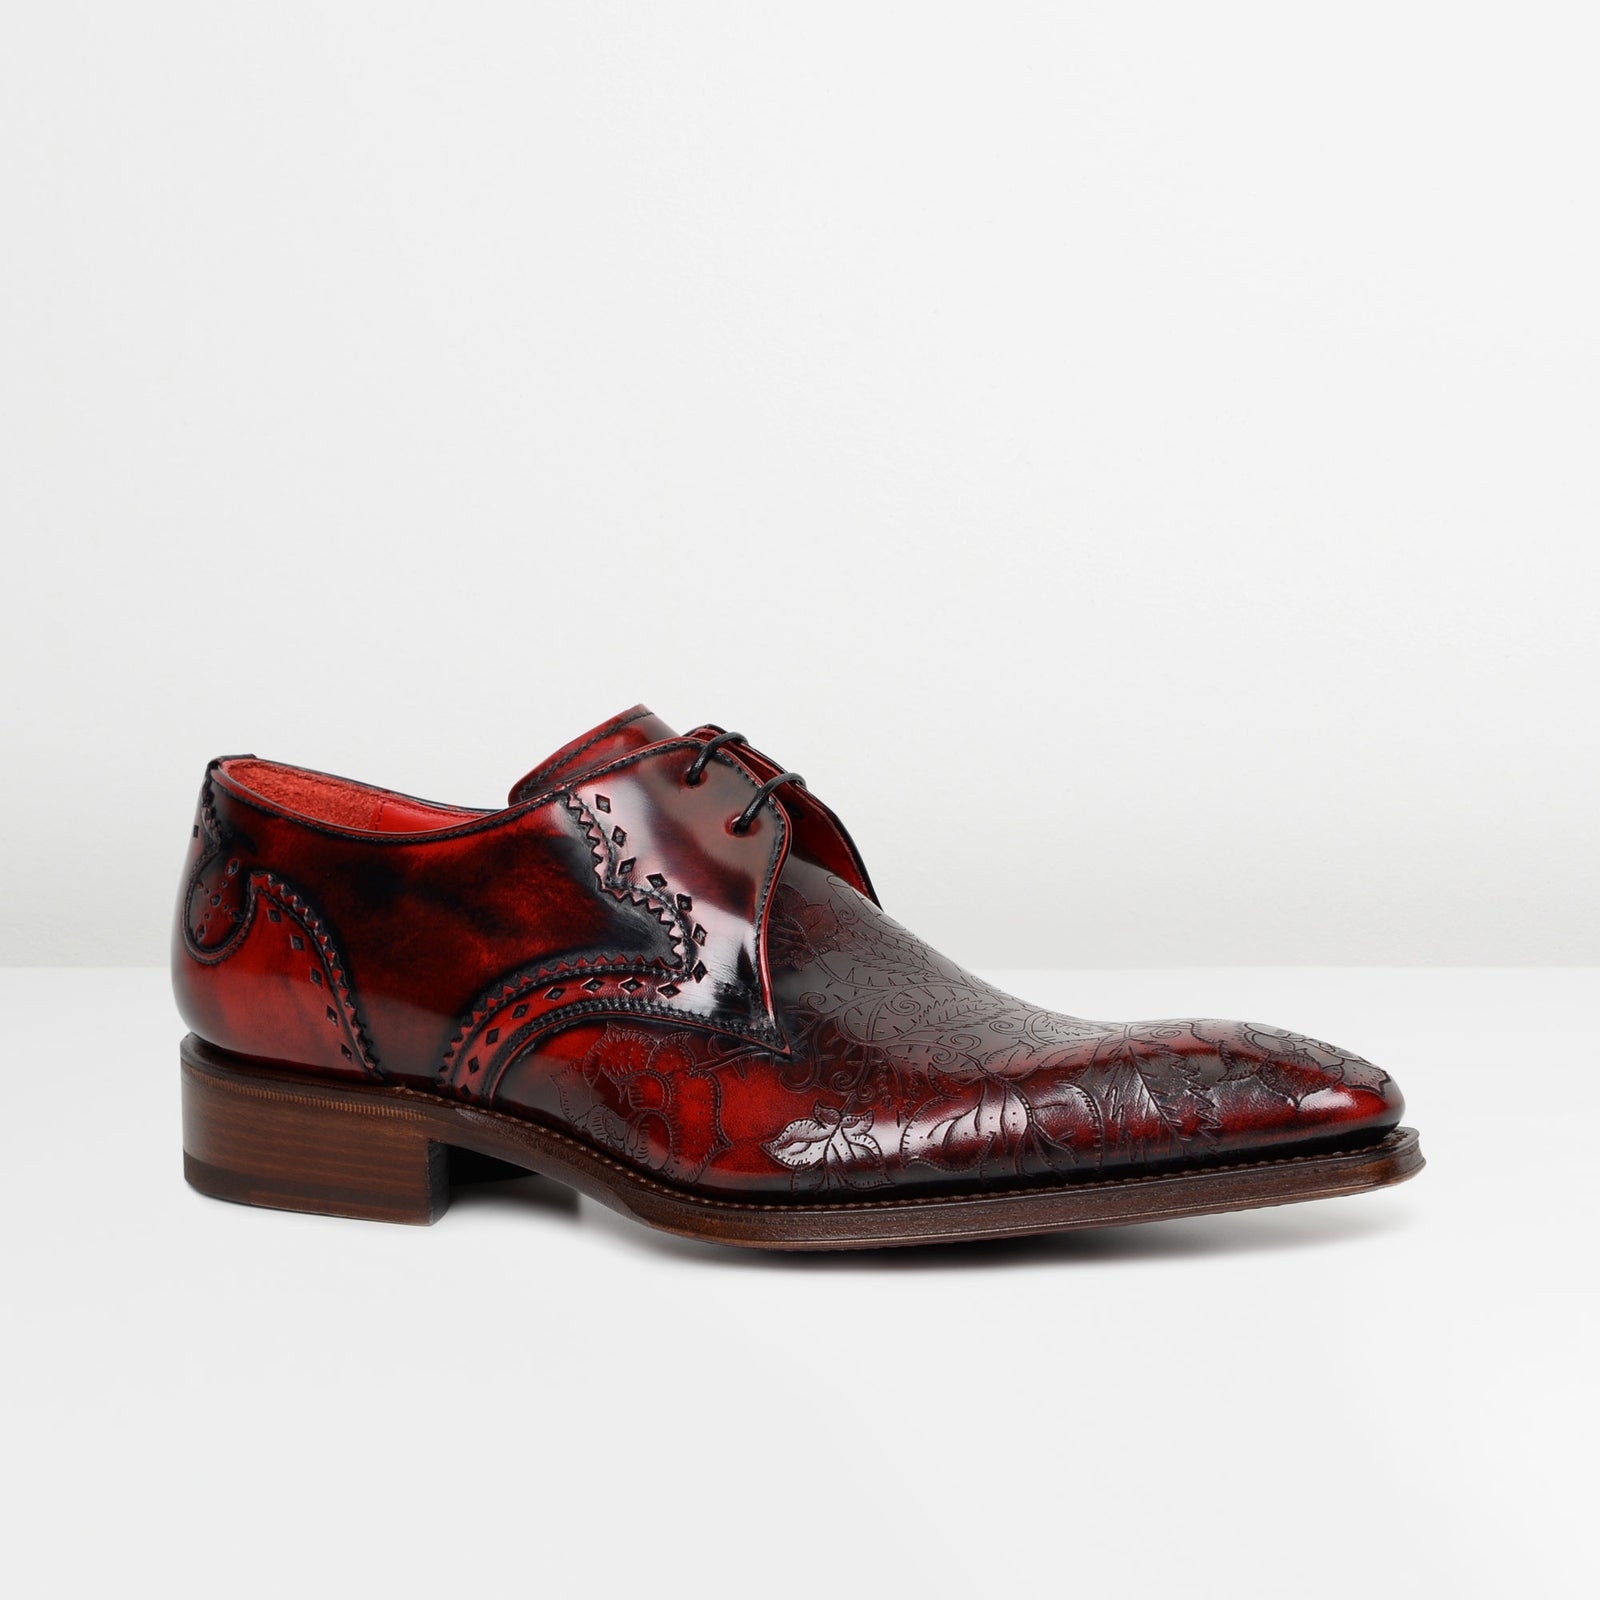 Shade Fume Marl Moon 'Poison' Gibson Shoes